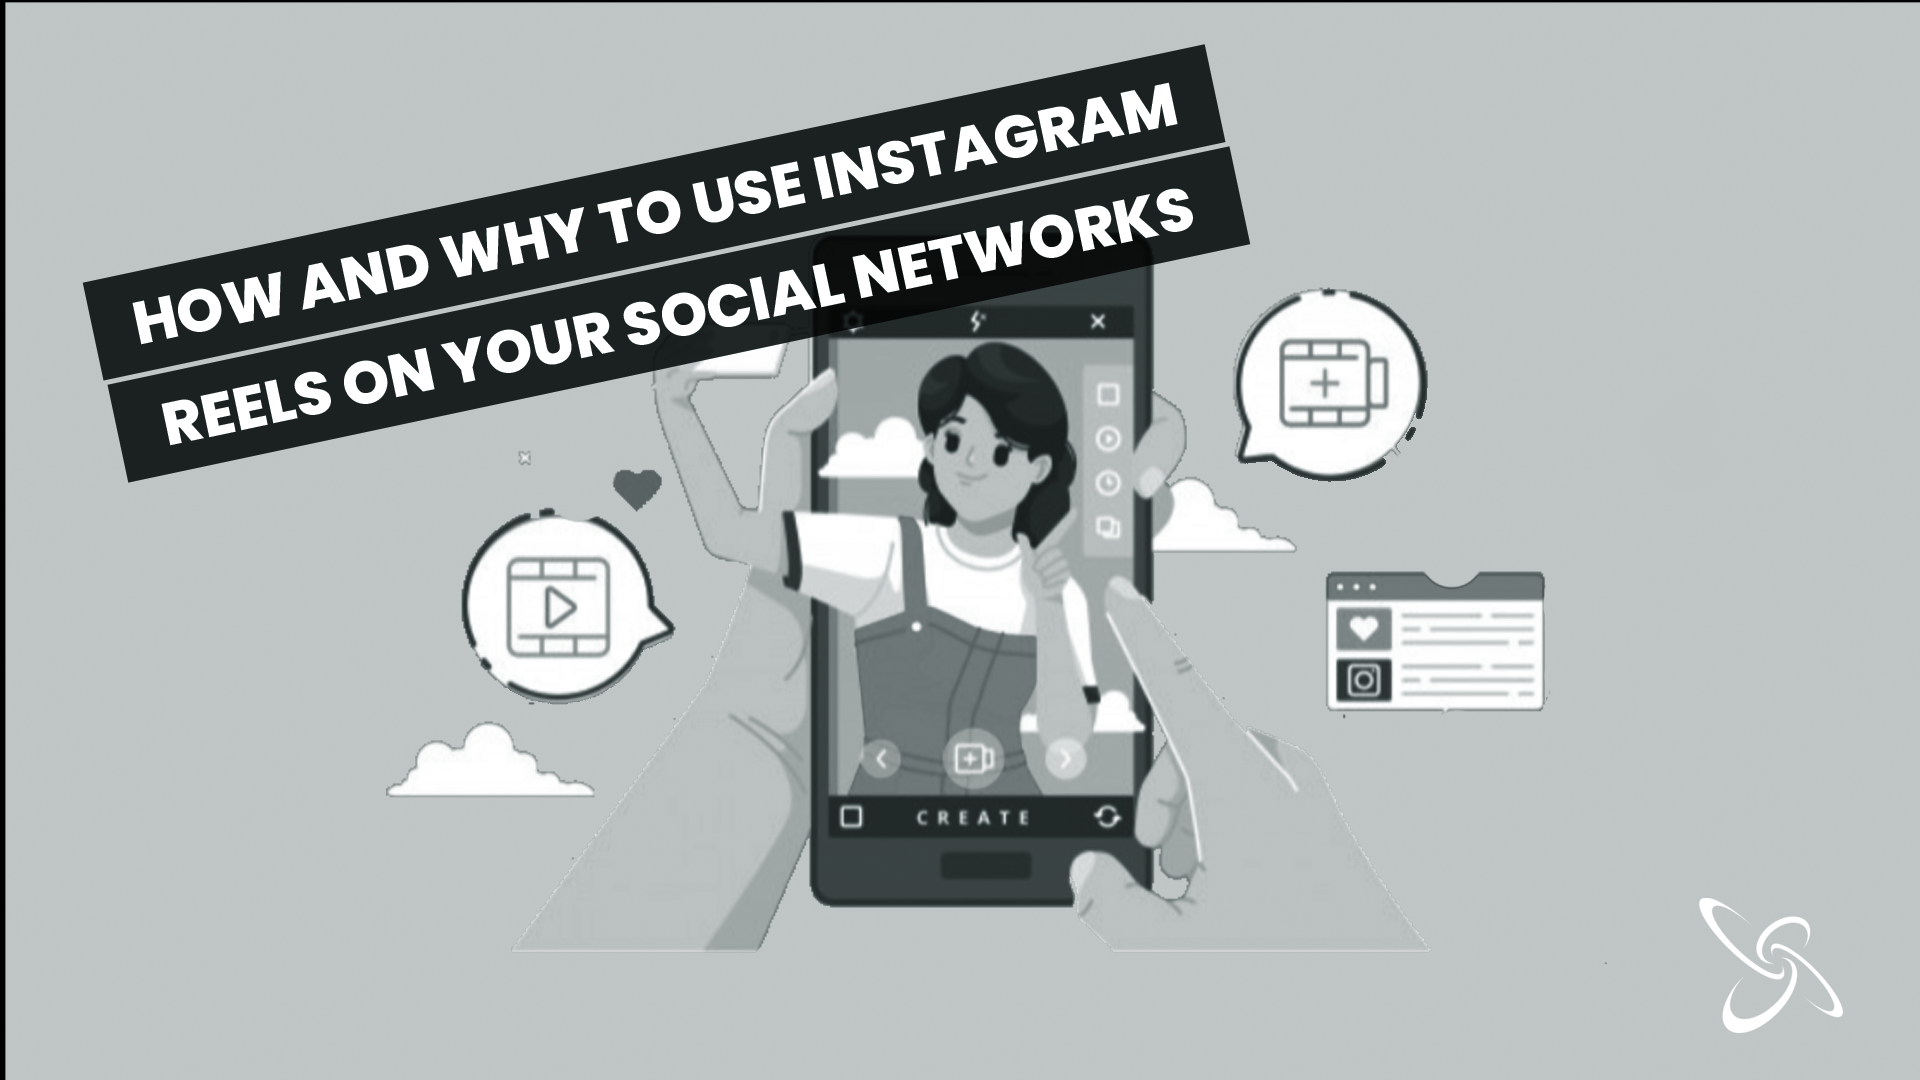 how and why to use instagram reels on your social networks